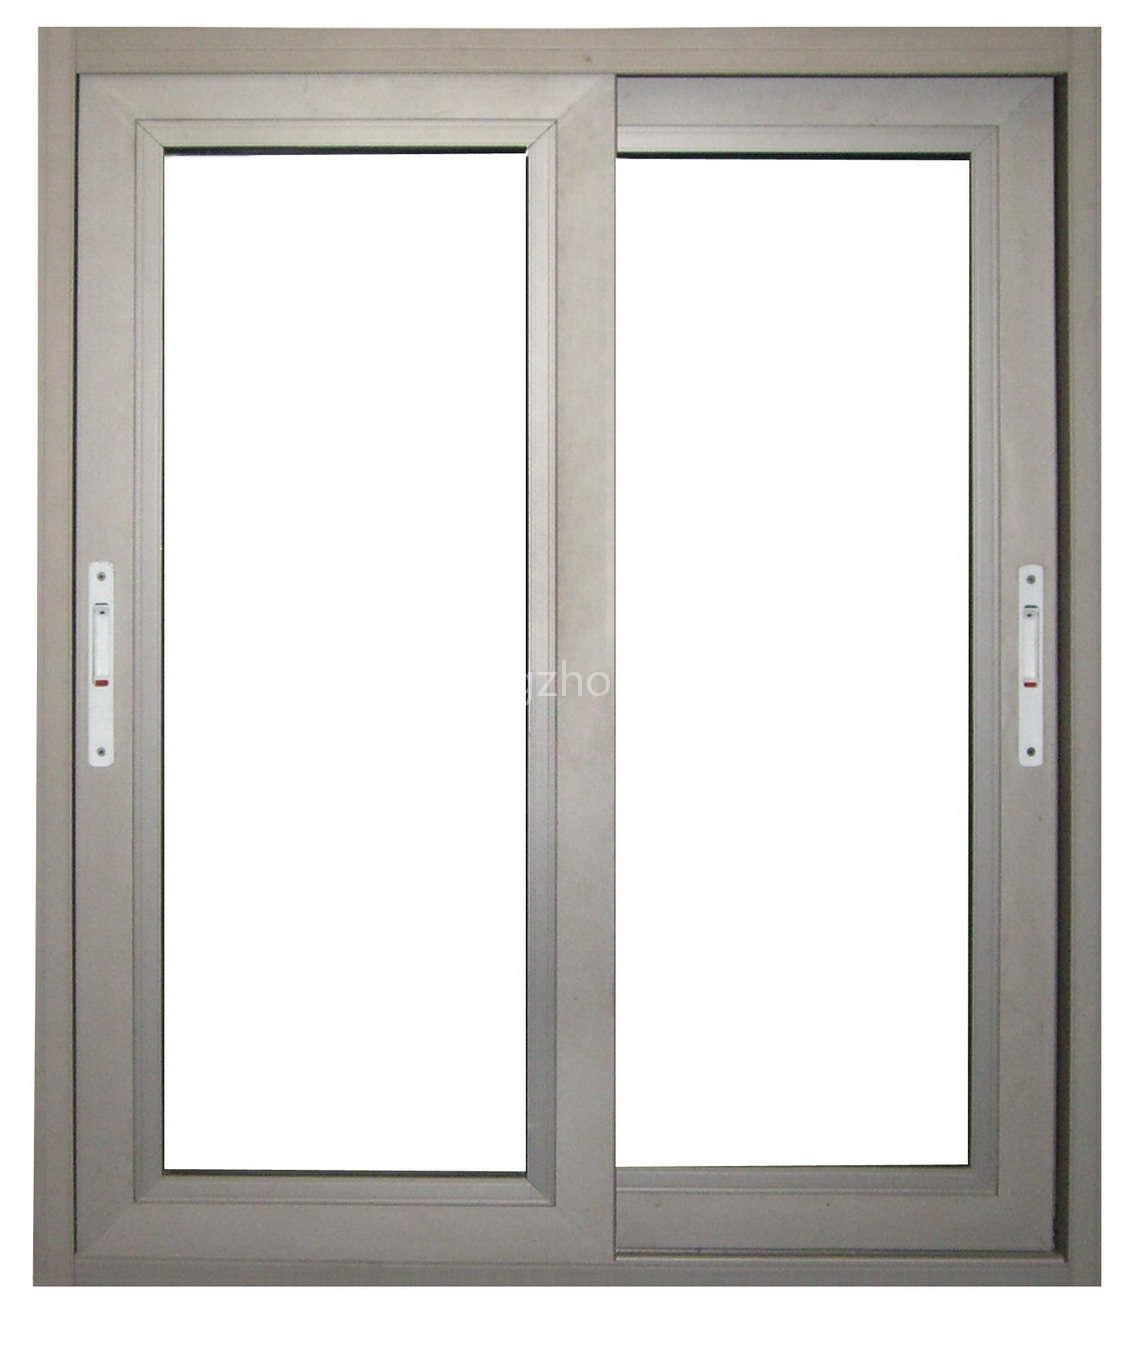 Aluminum Windows Product : Sliding window replacement